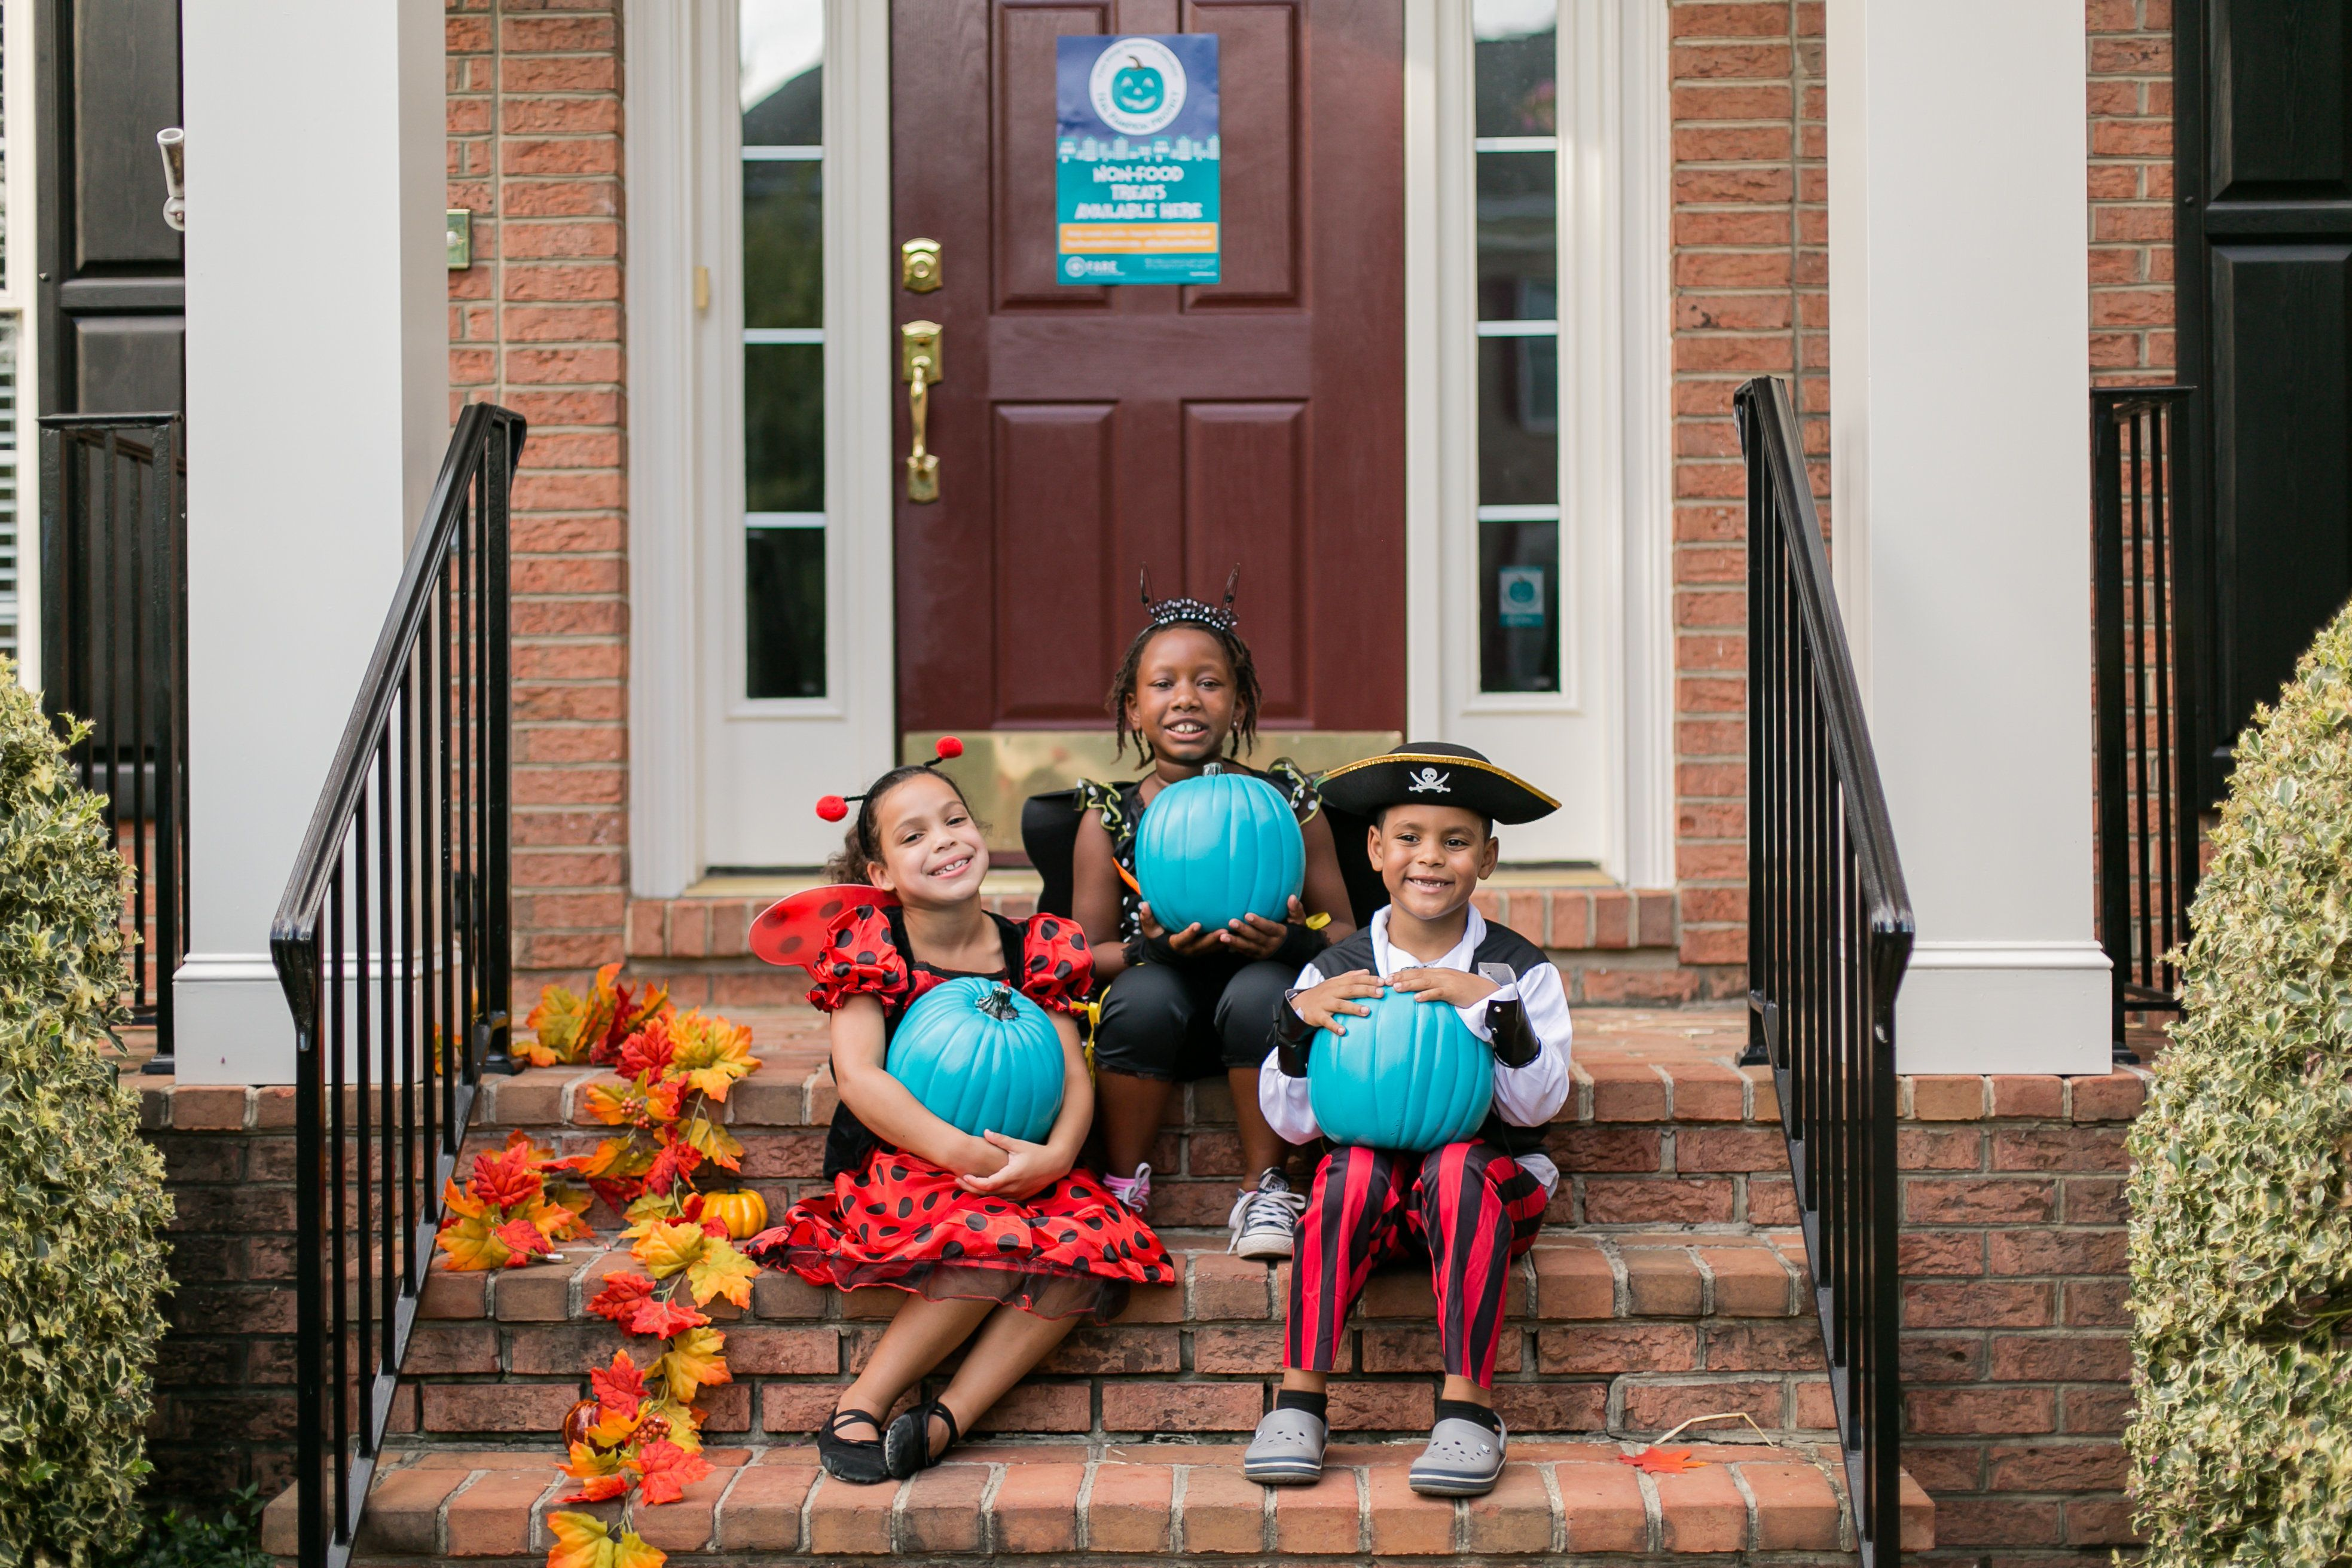 FARE teamed up with Michaels Craft Stores to spread the word about the Teal Pumpkin Project.